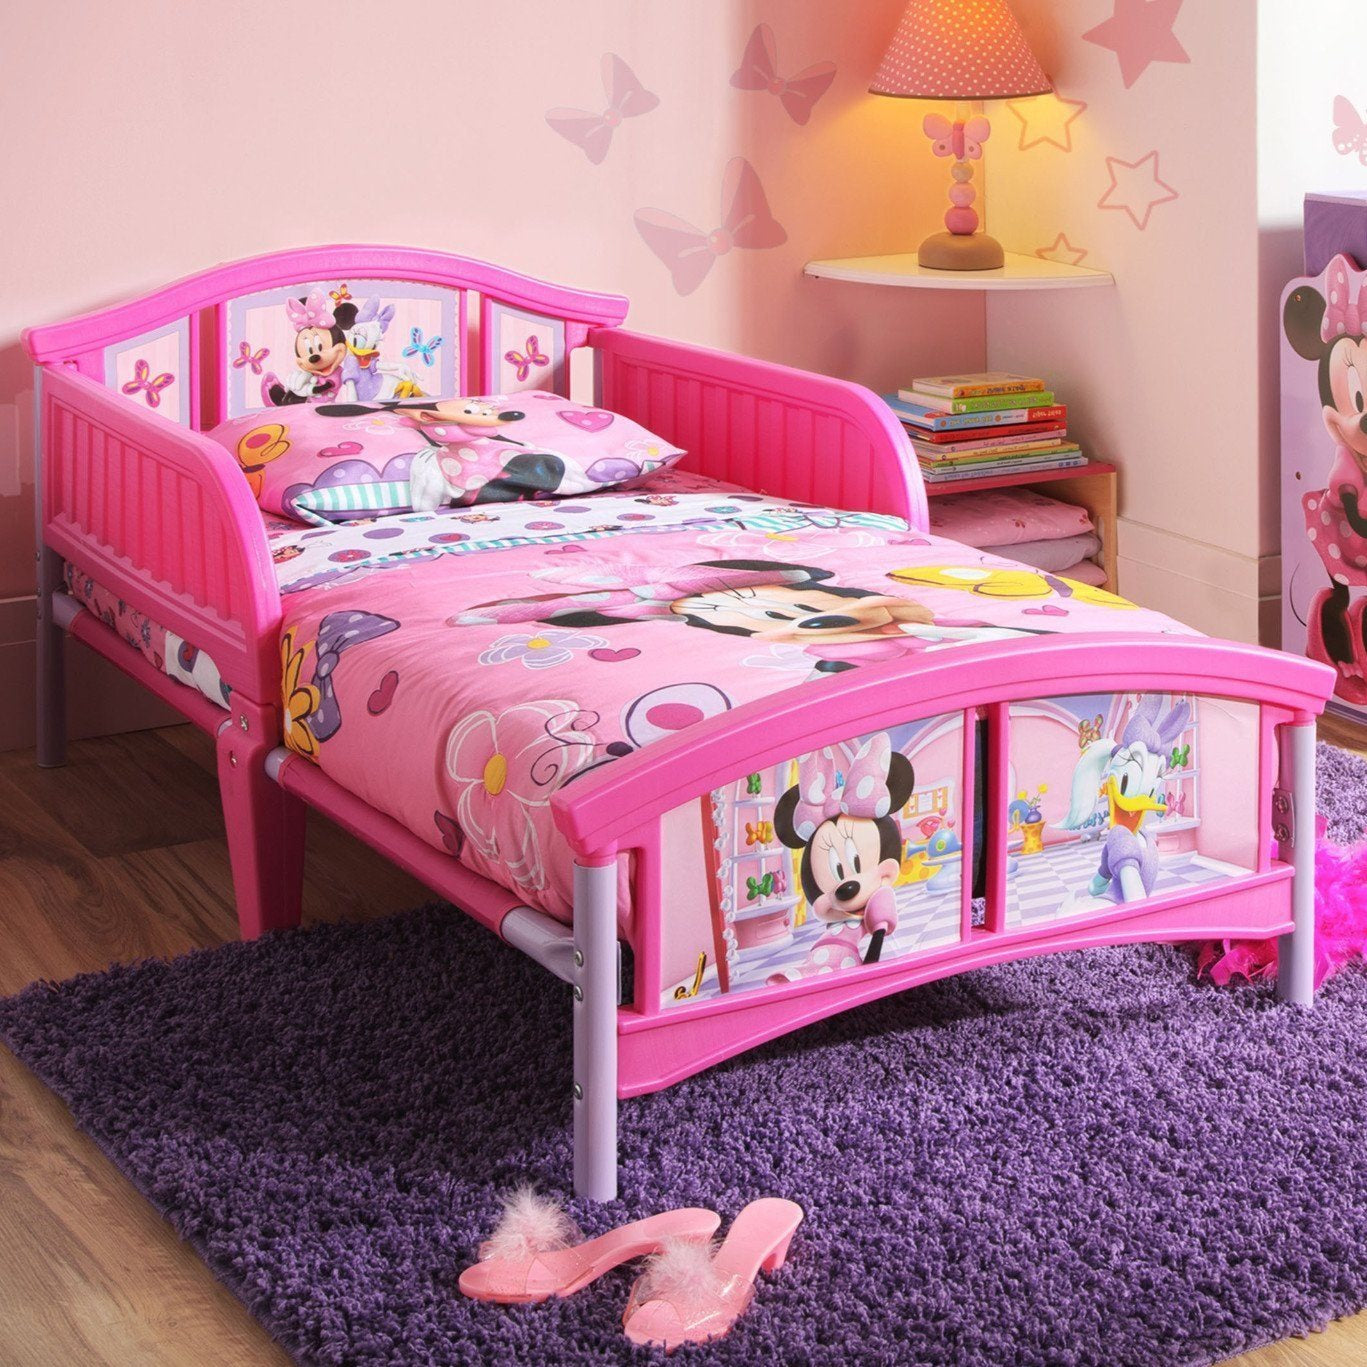 Minnie Mouse Plastic Toddler Bed